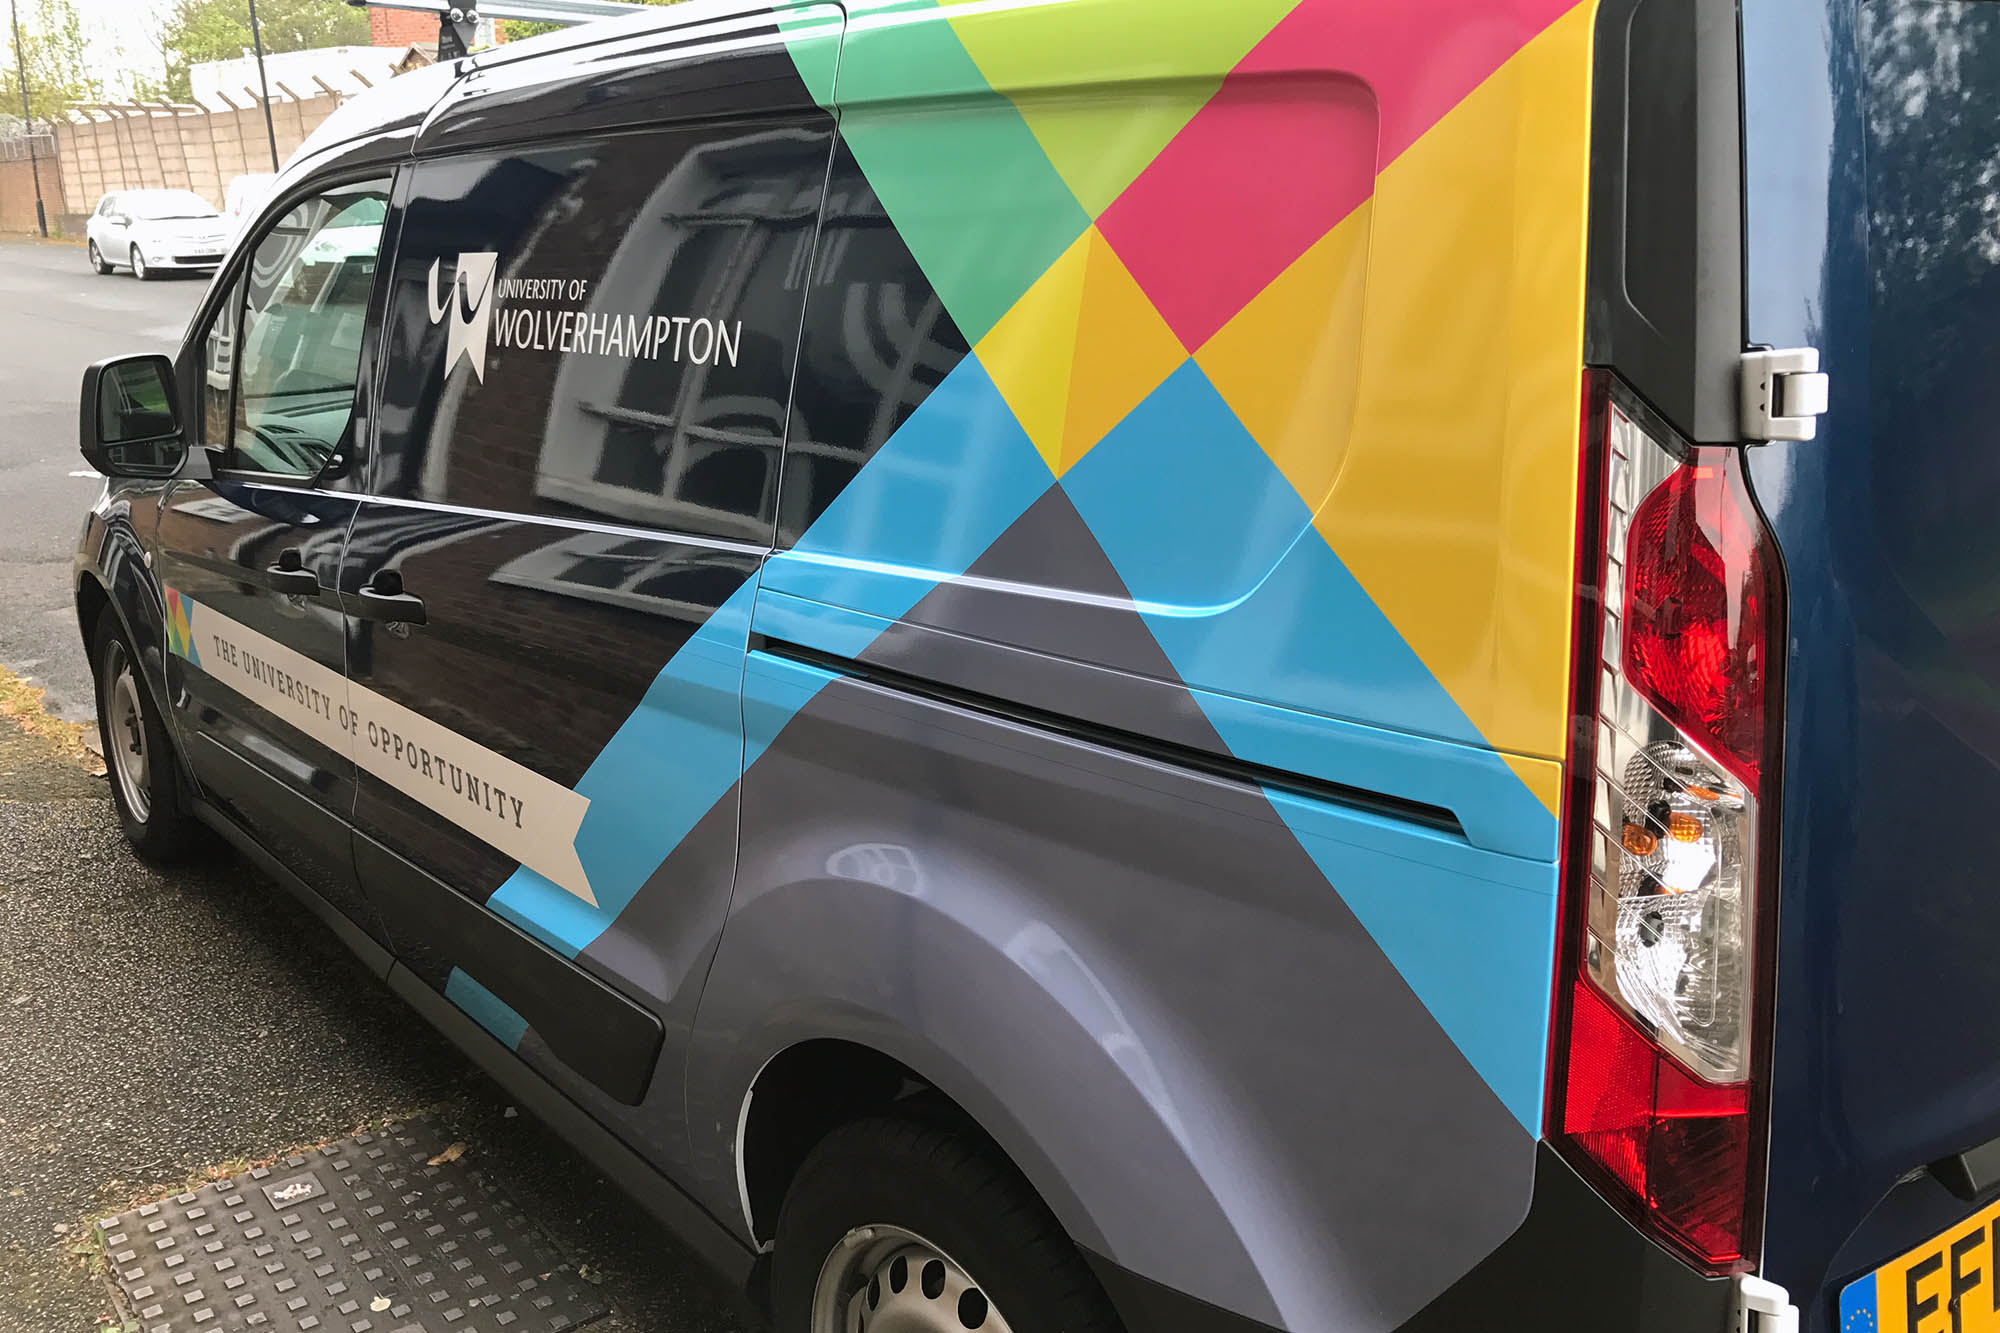 7b8c1b1c26 Our vehicle graphics are produced using the most durable vehicle grade  substrates. Our technology ensures your vehicles look pristine and support  your brand ...